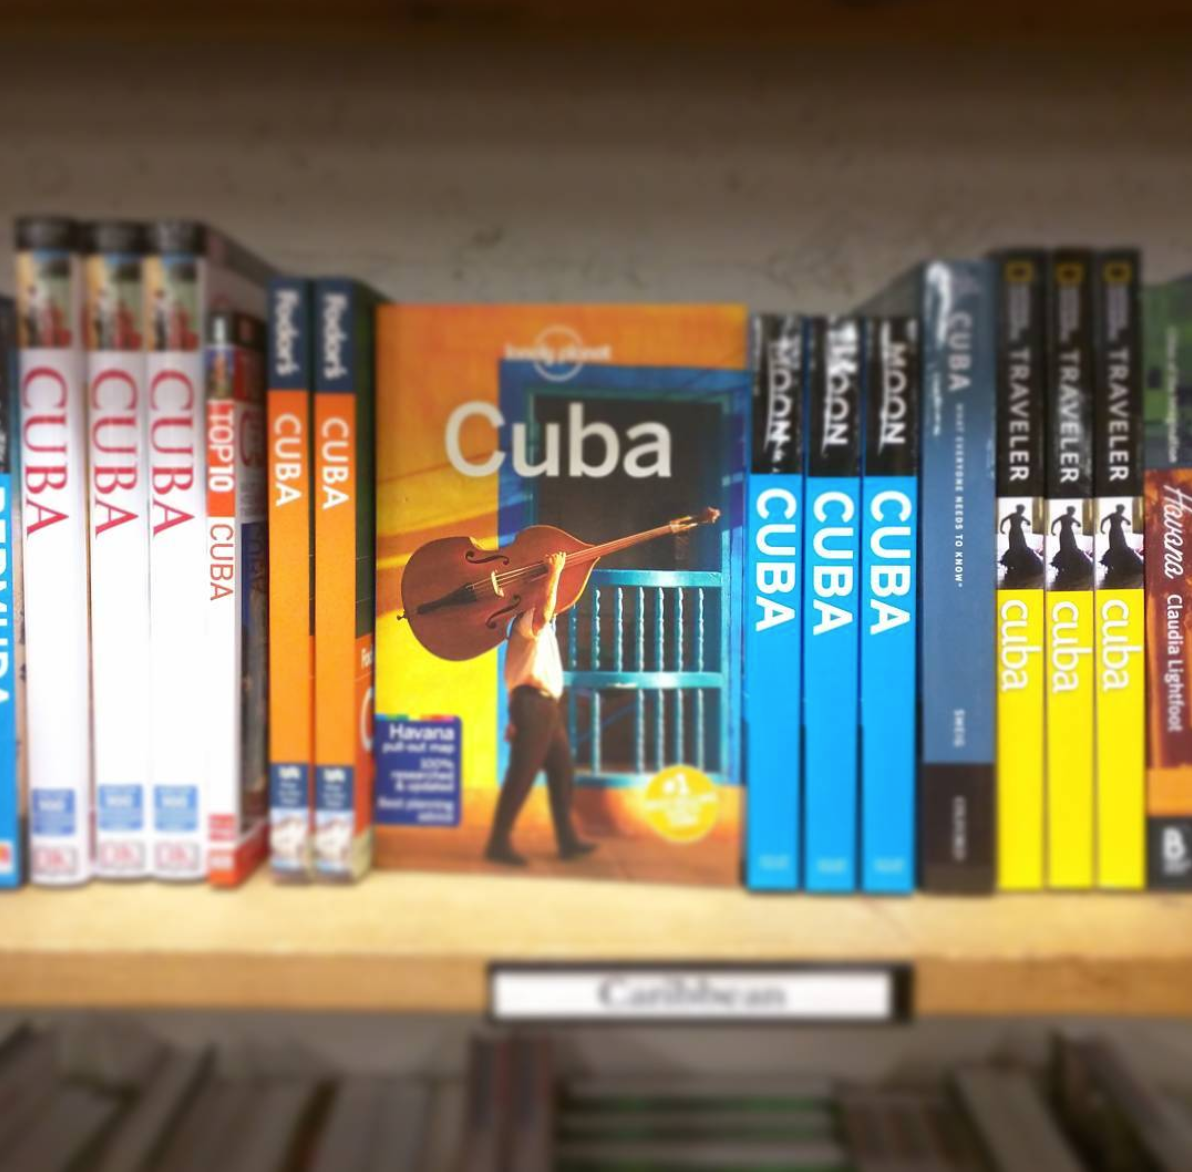 Trip Planning with Cuba Travel Guides